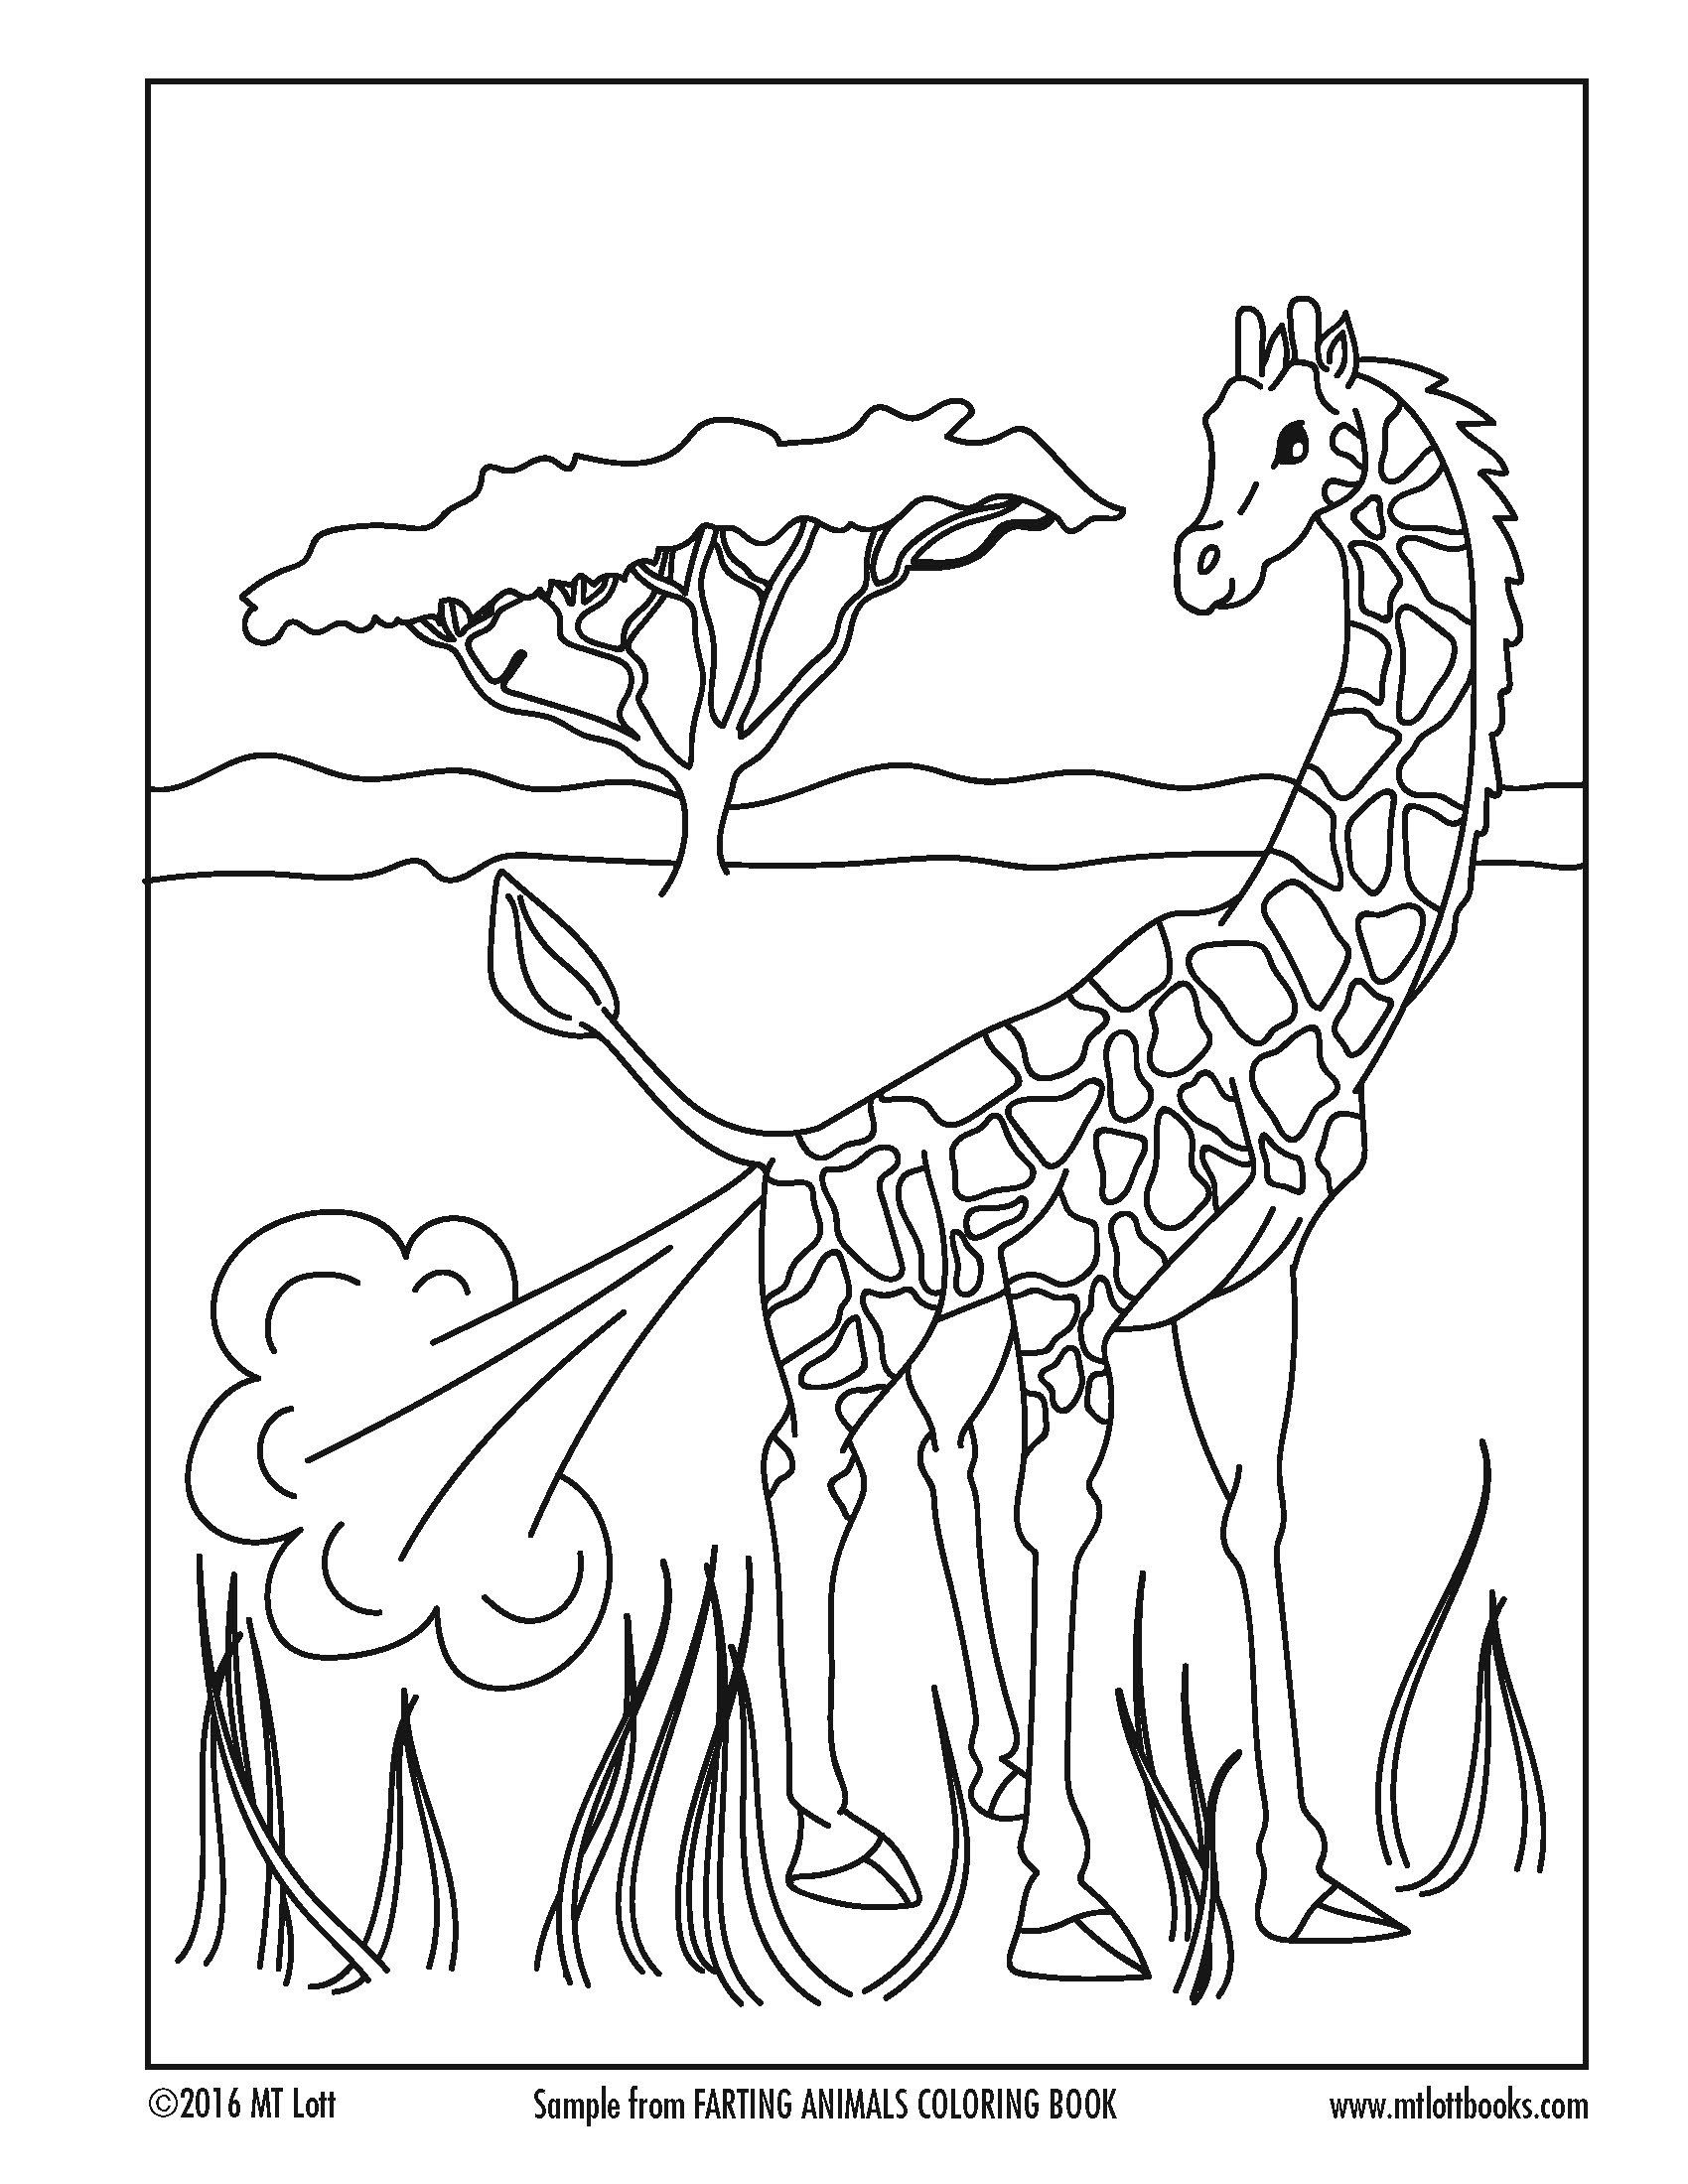 Free Coloring Page From M T Lott S Farting Animals Coloring Book Animal Coloring Pages Animal Coloring Books Coloring Pages